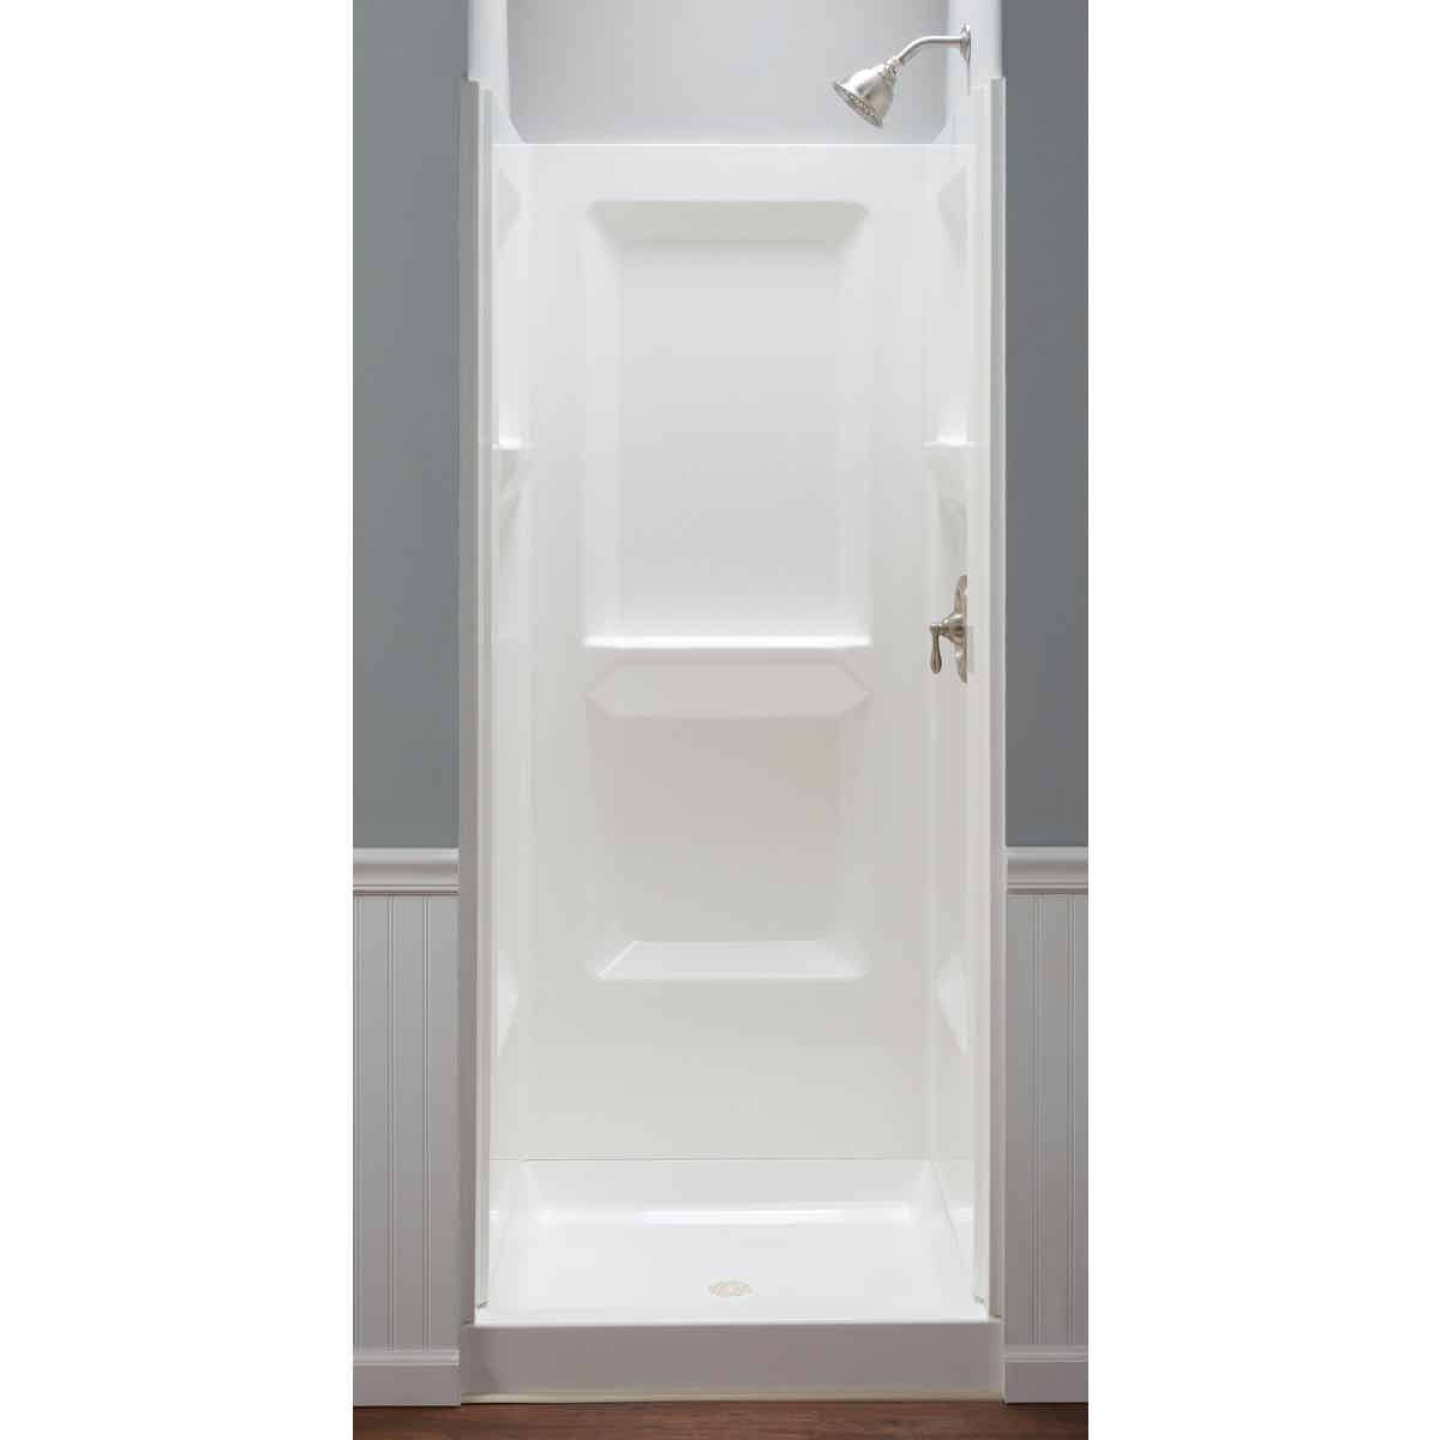 Mustee Durawall Model 700 3-Piece 32 In. W x 32 In. D Shower Wall Set in White Image 1